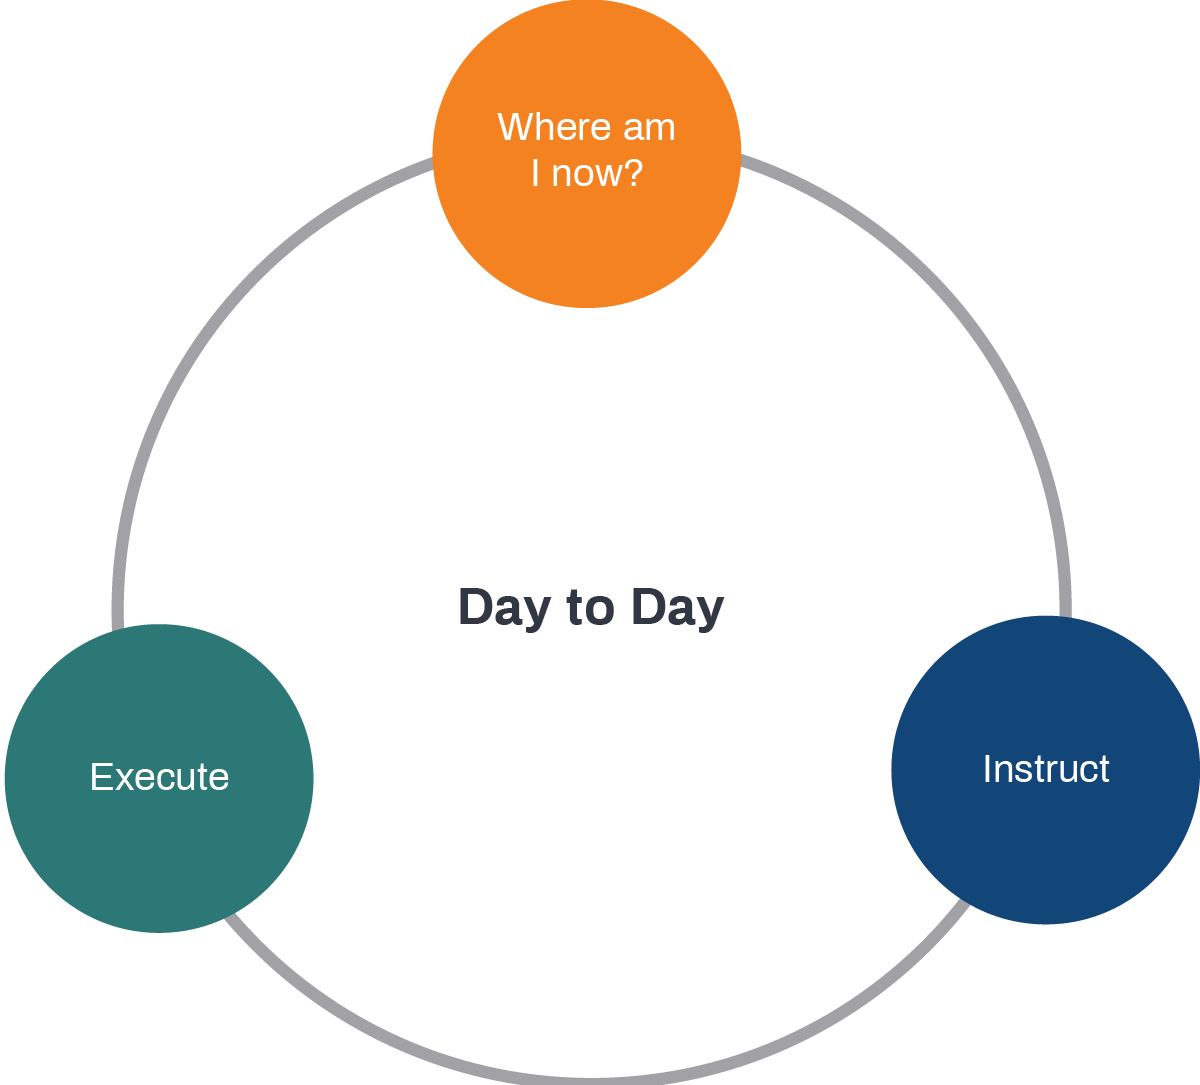 Day to Day cycle